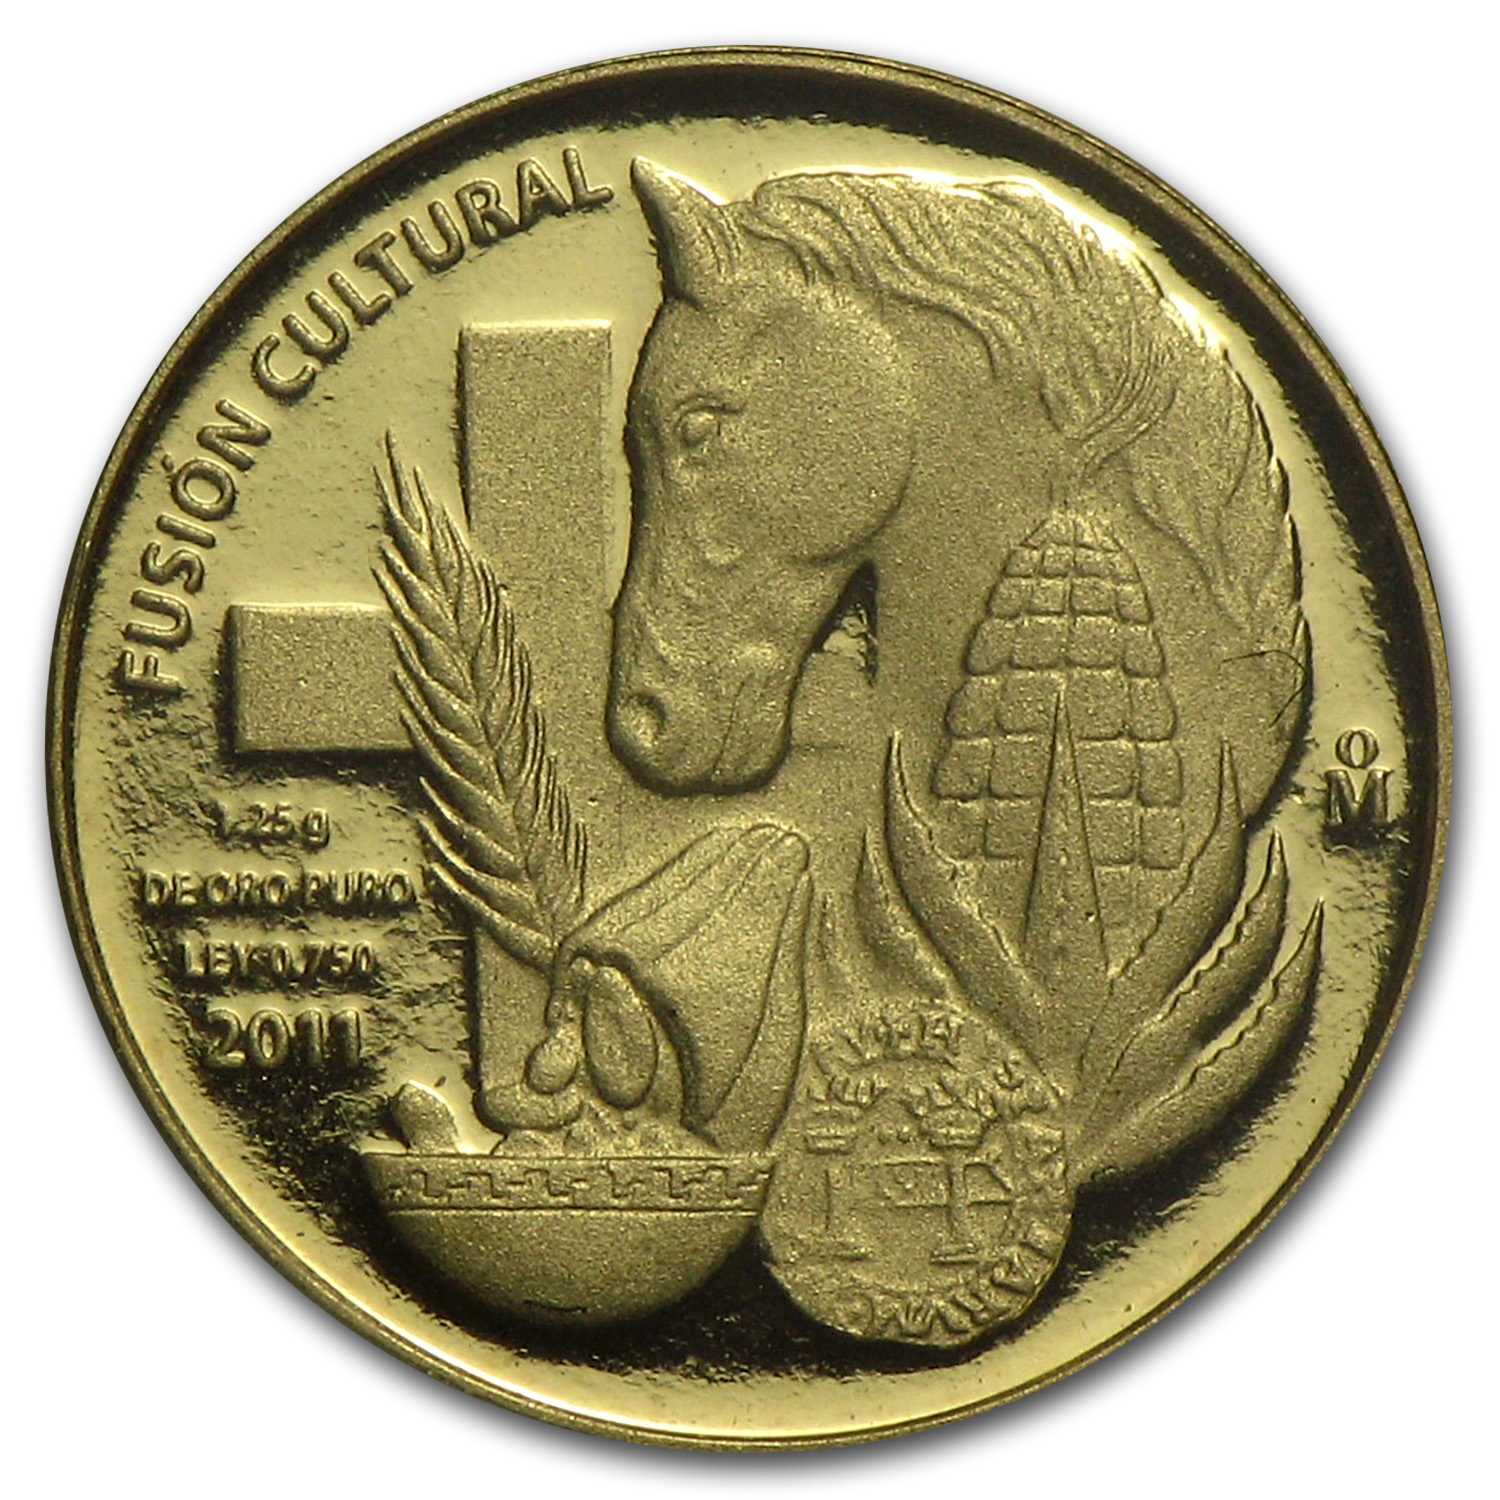 2011 Mexico Gold La Mercancía Proof (Coin only)